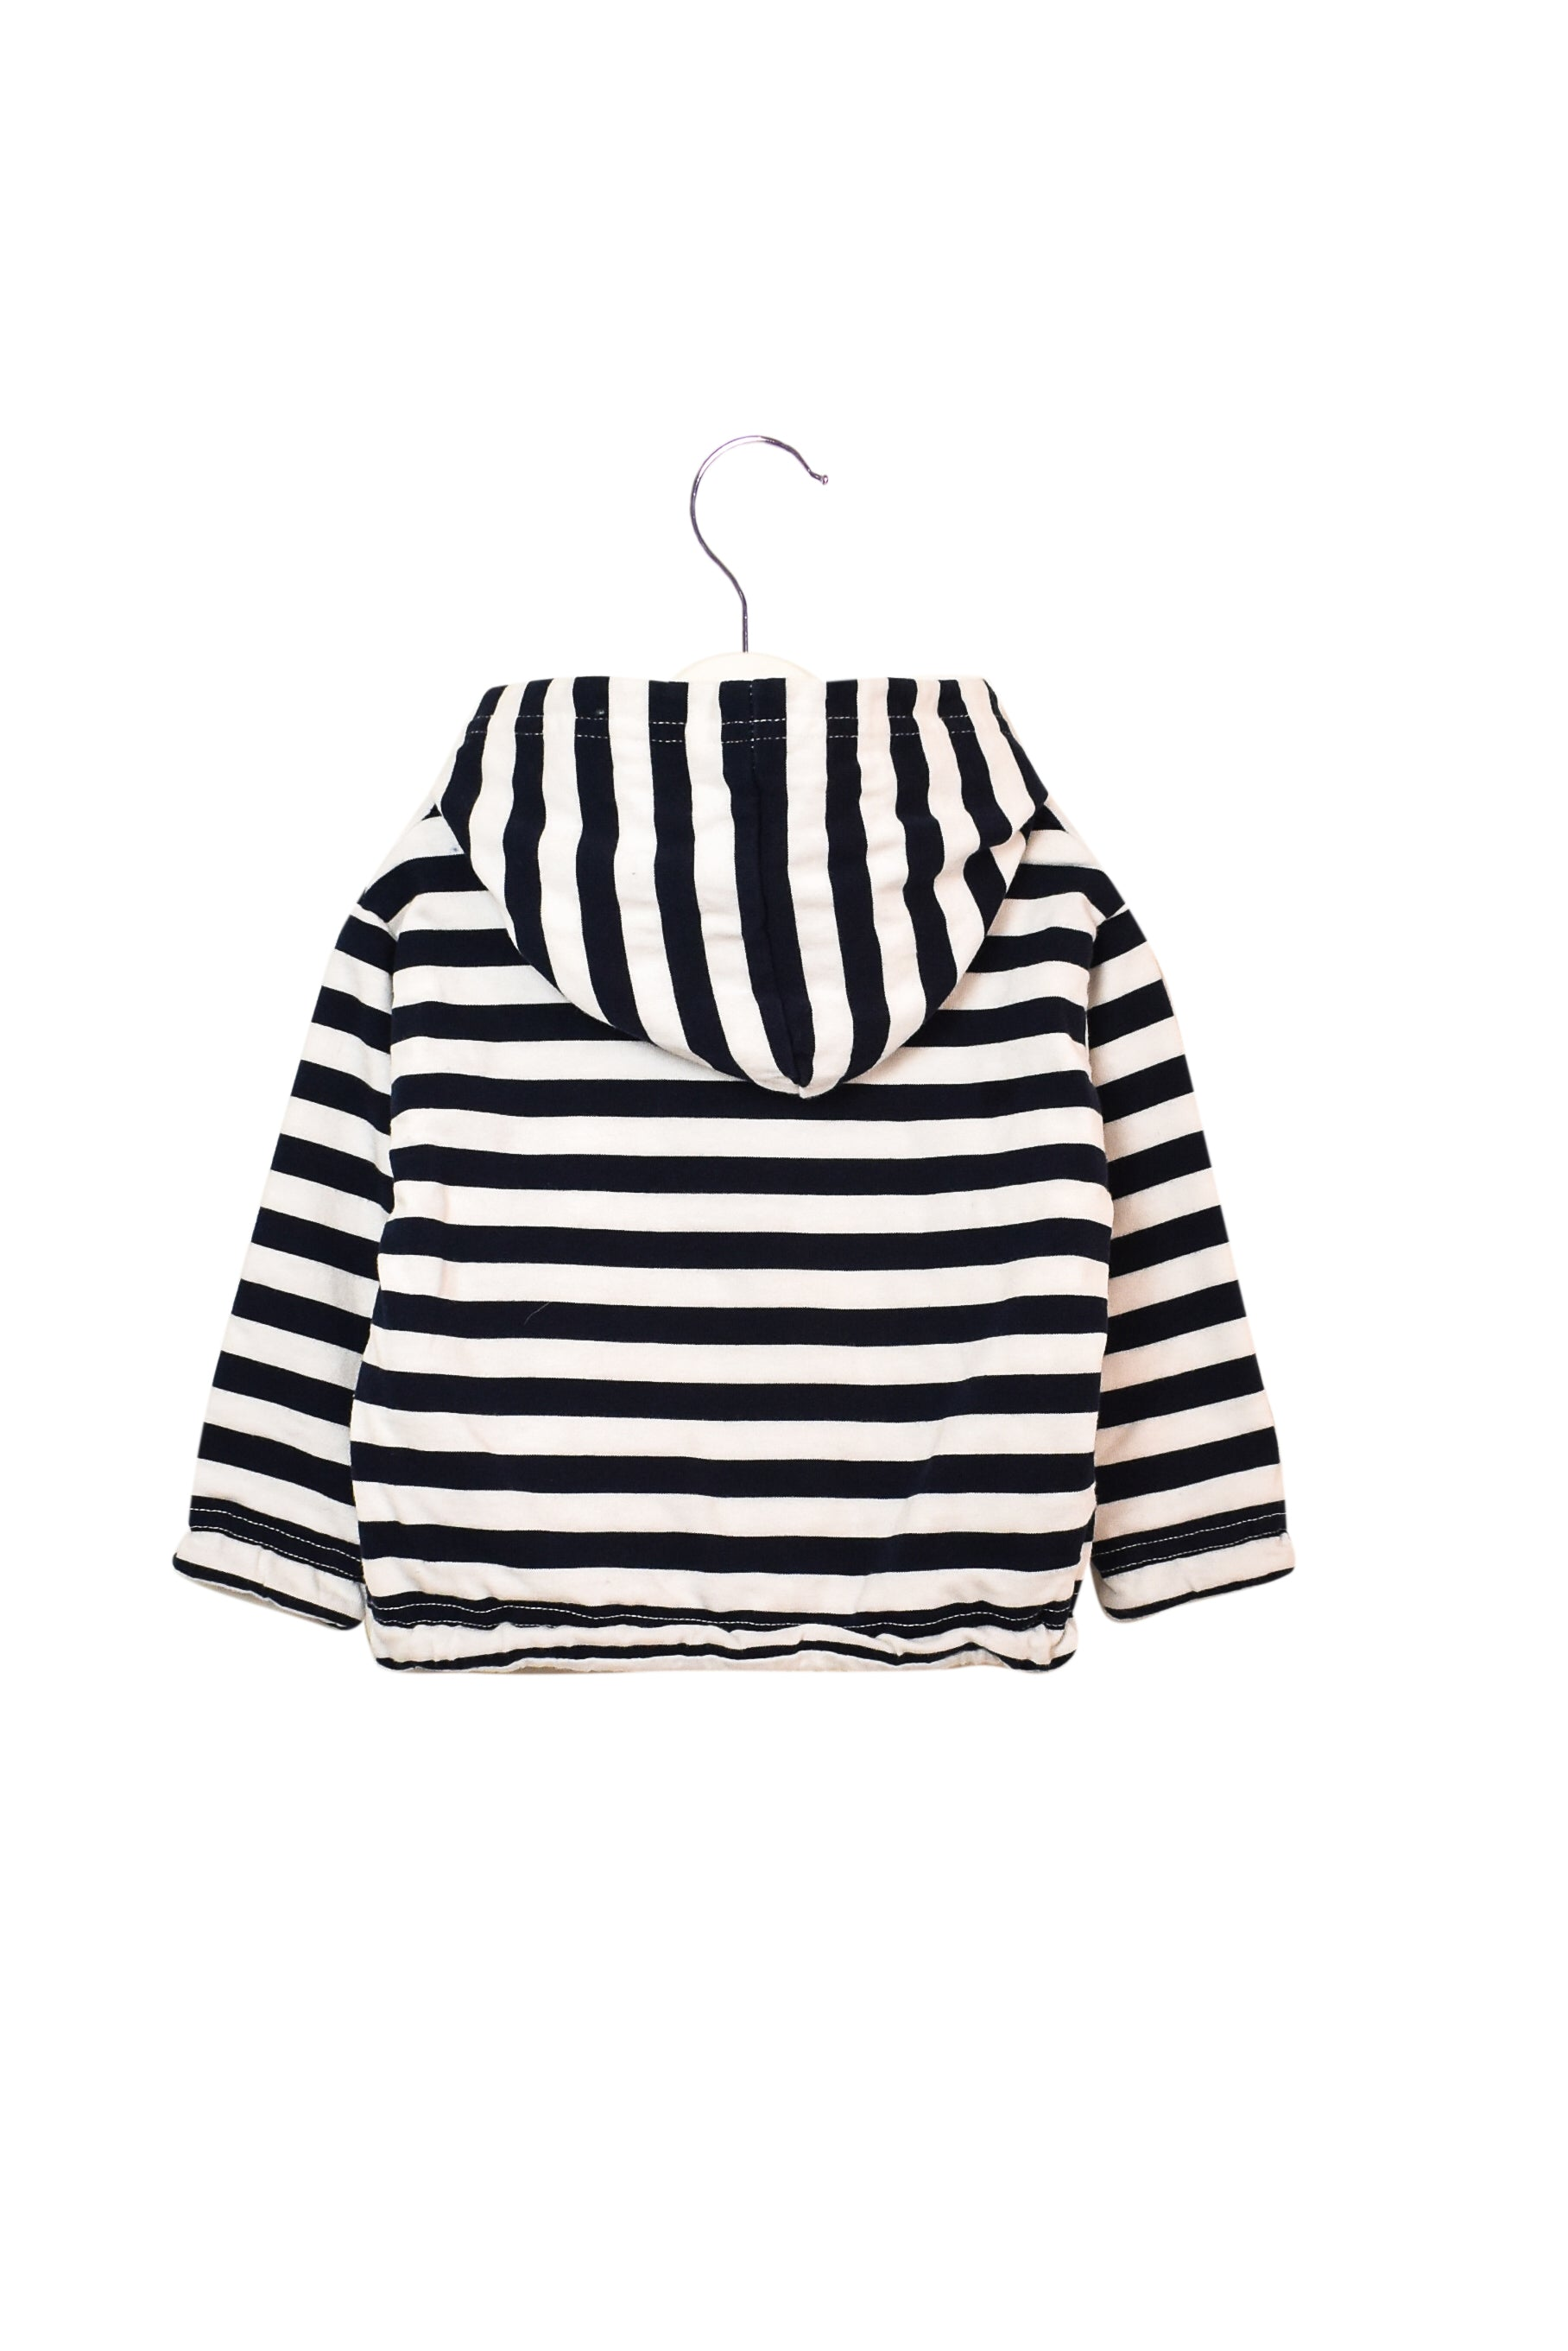 10008335 Petit Breton Baby ~ Sweatshirt 3-6M at Retykle